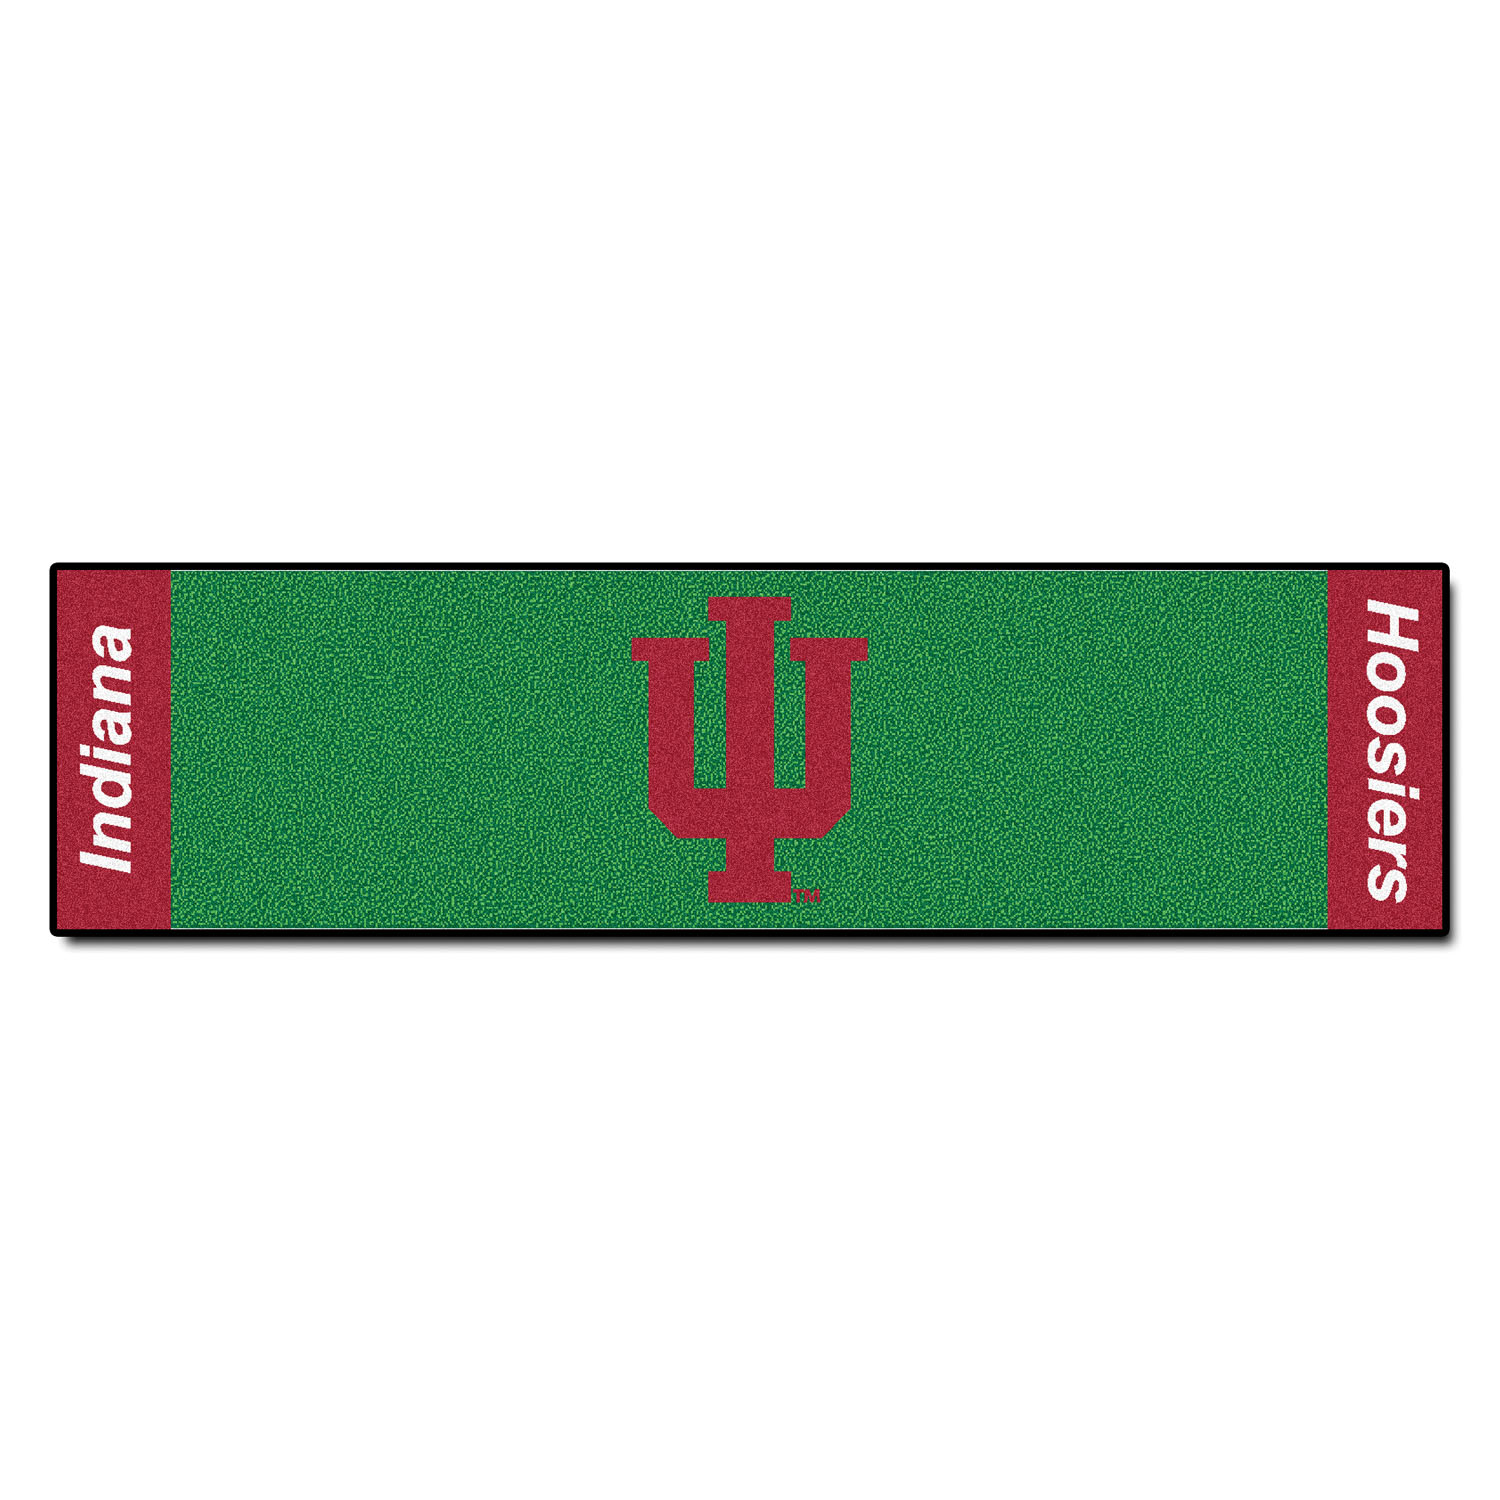 Fanmats Indiana Putting Green Runner